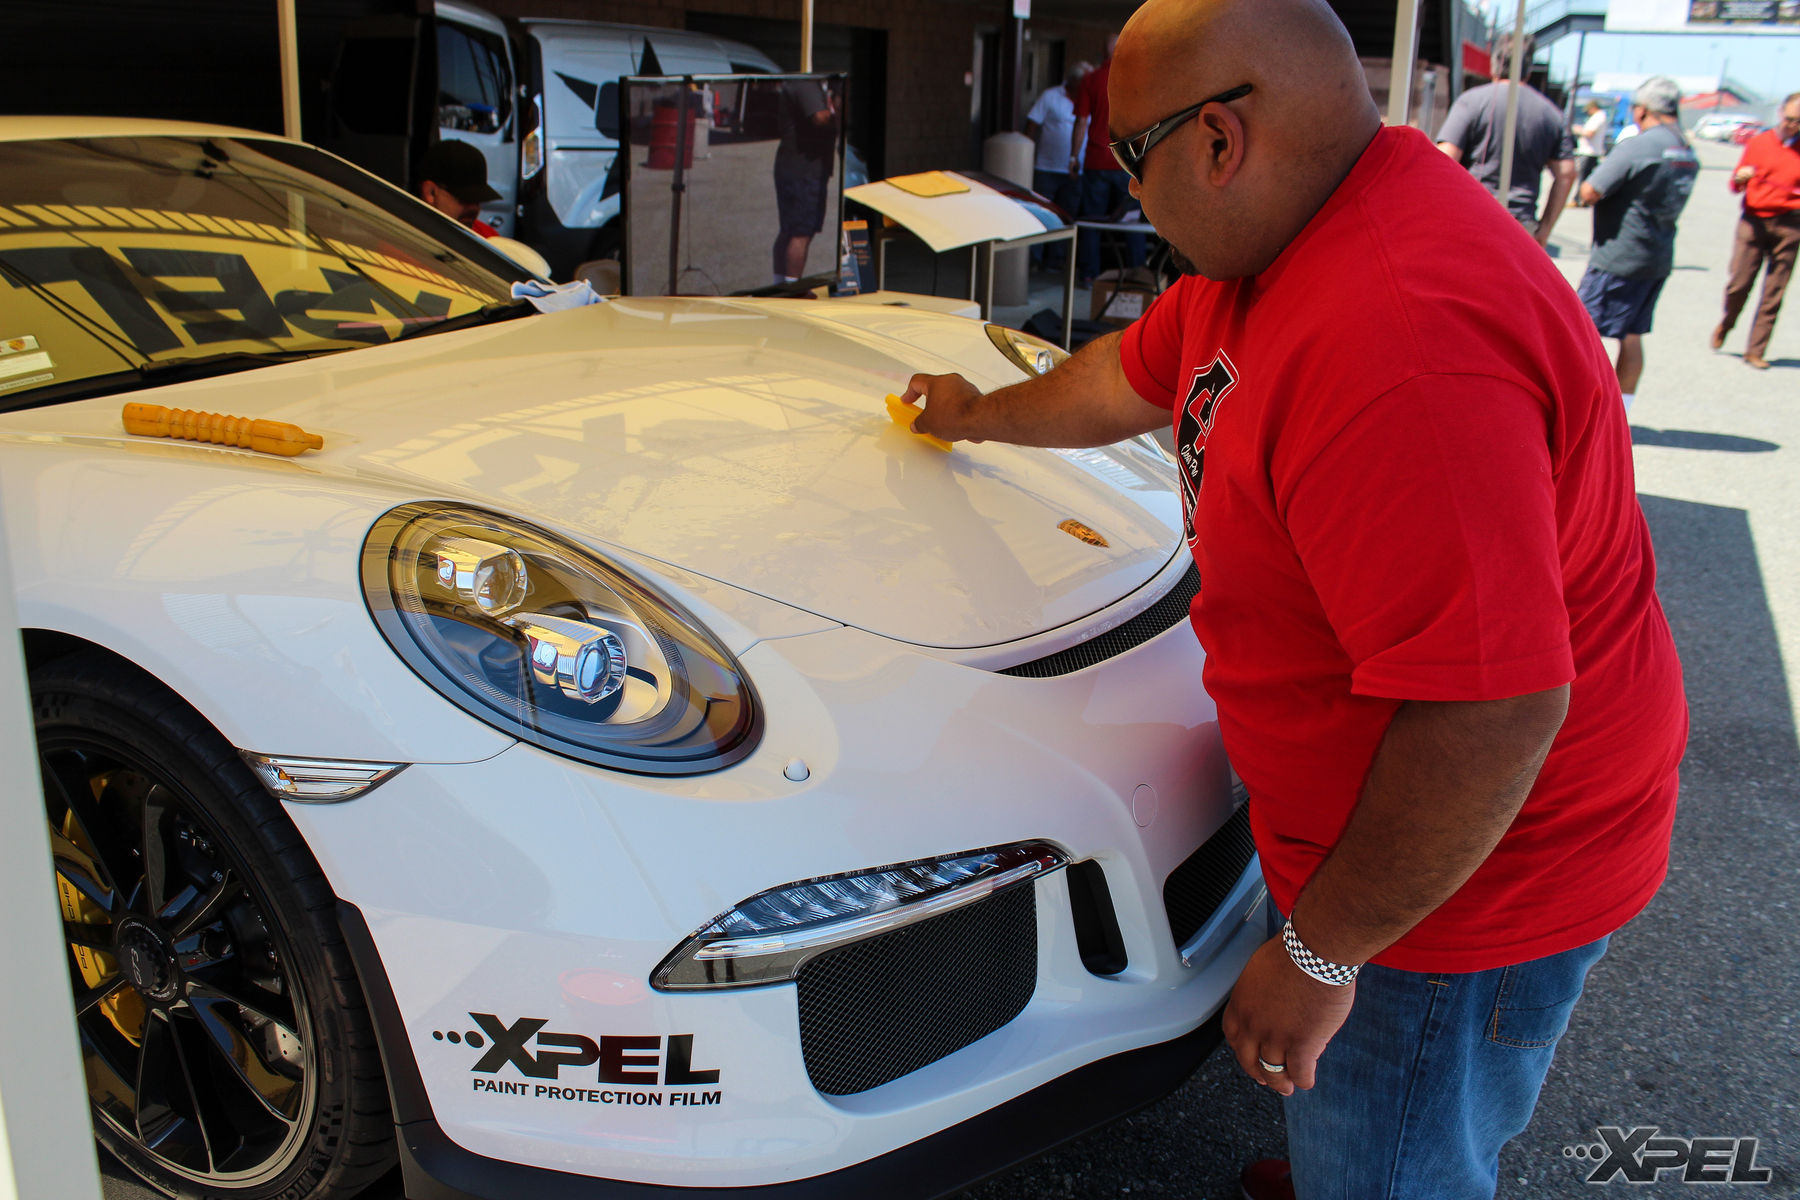 | XPEL booth at the California Festival of Speed with Clear Pro LLC